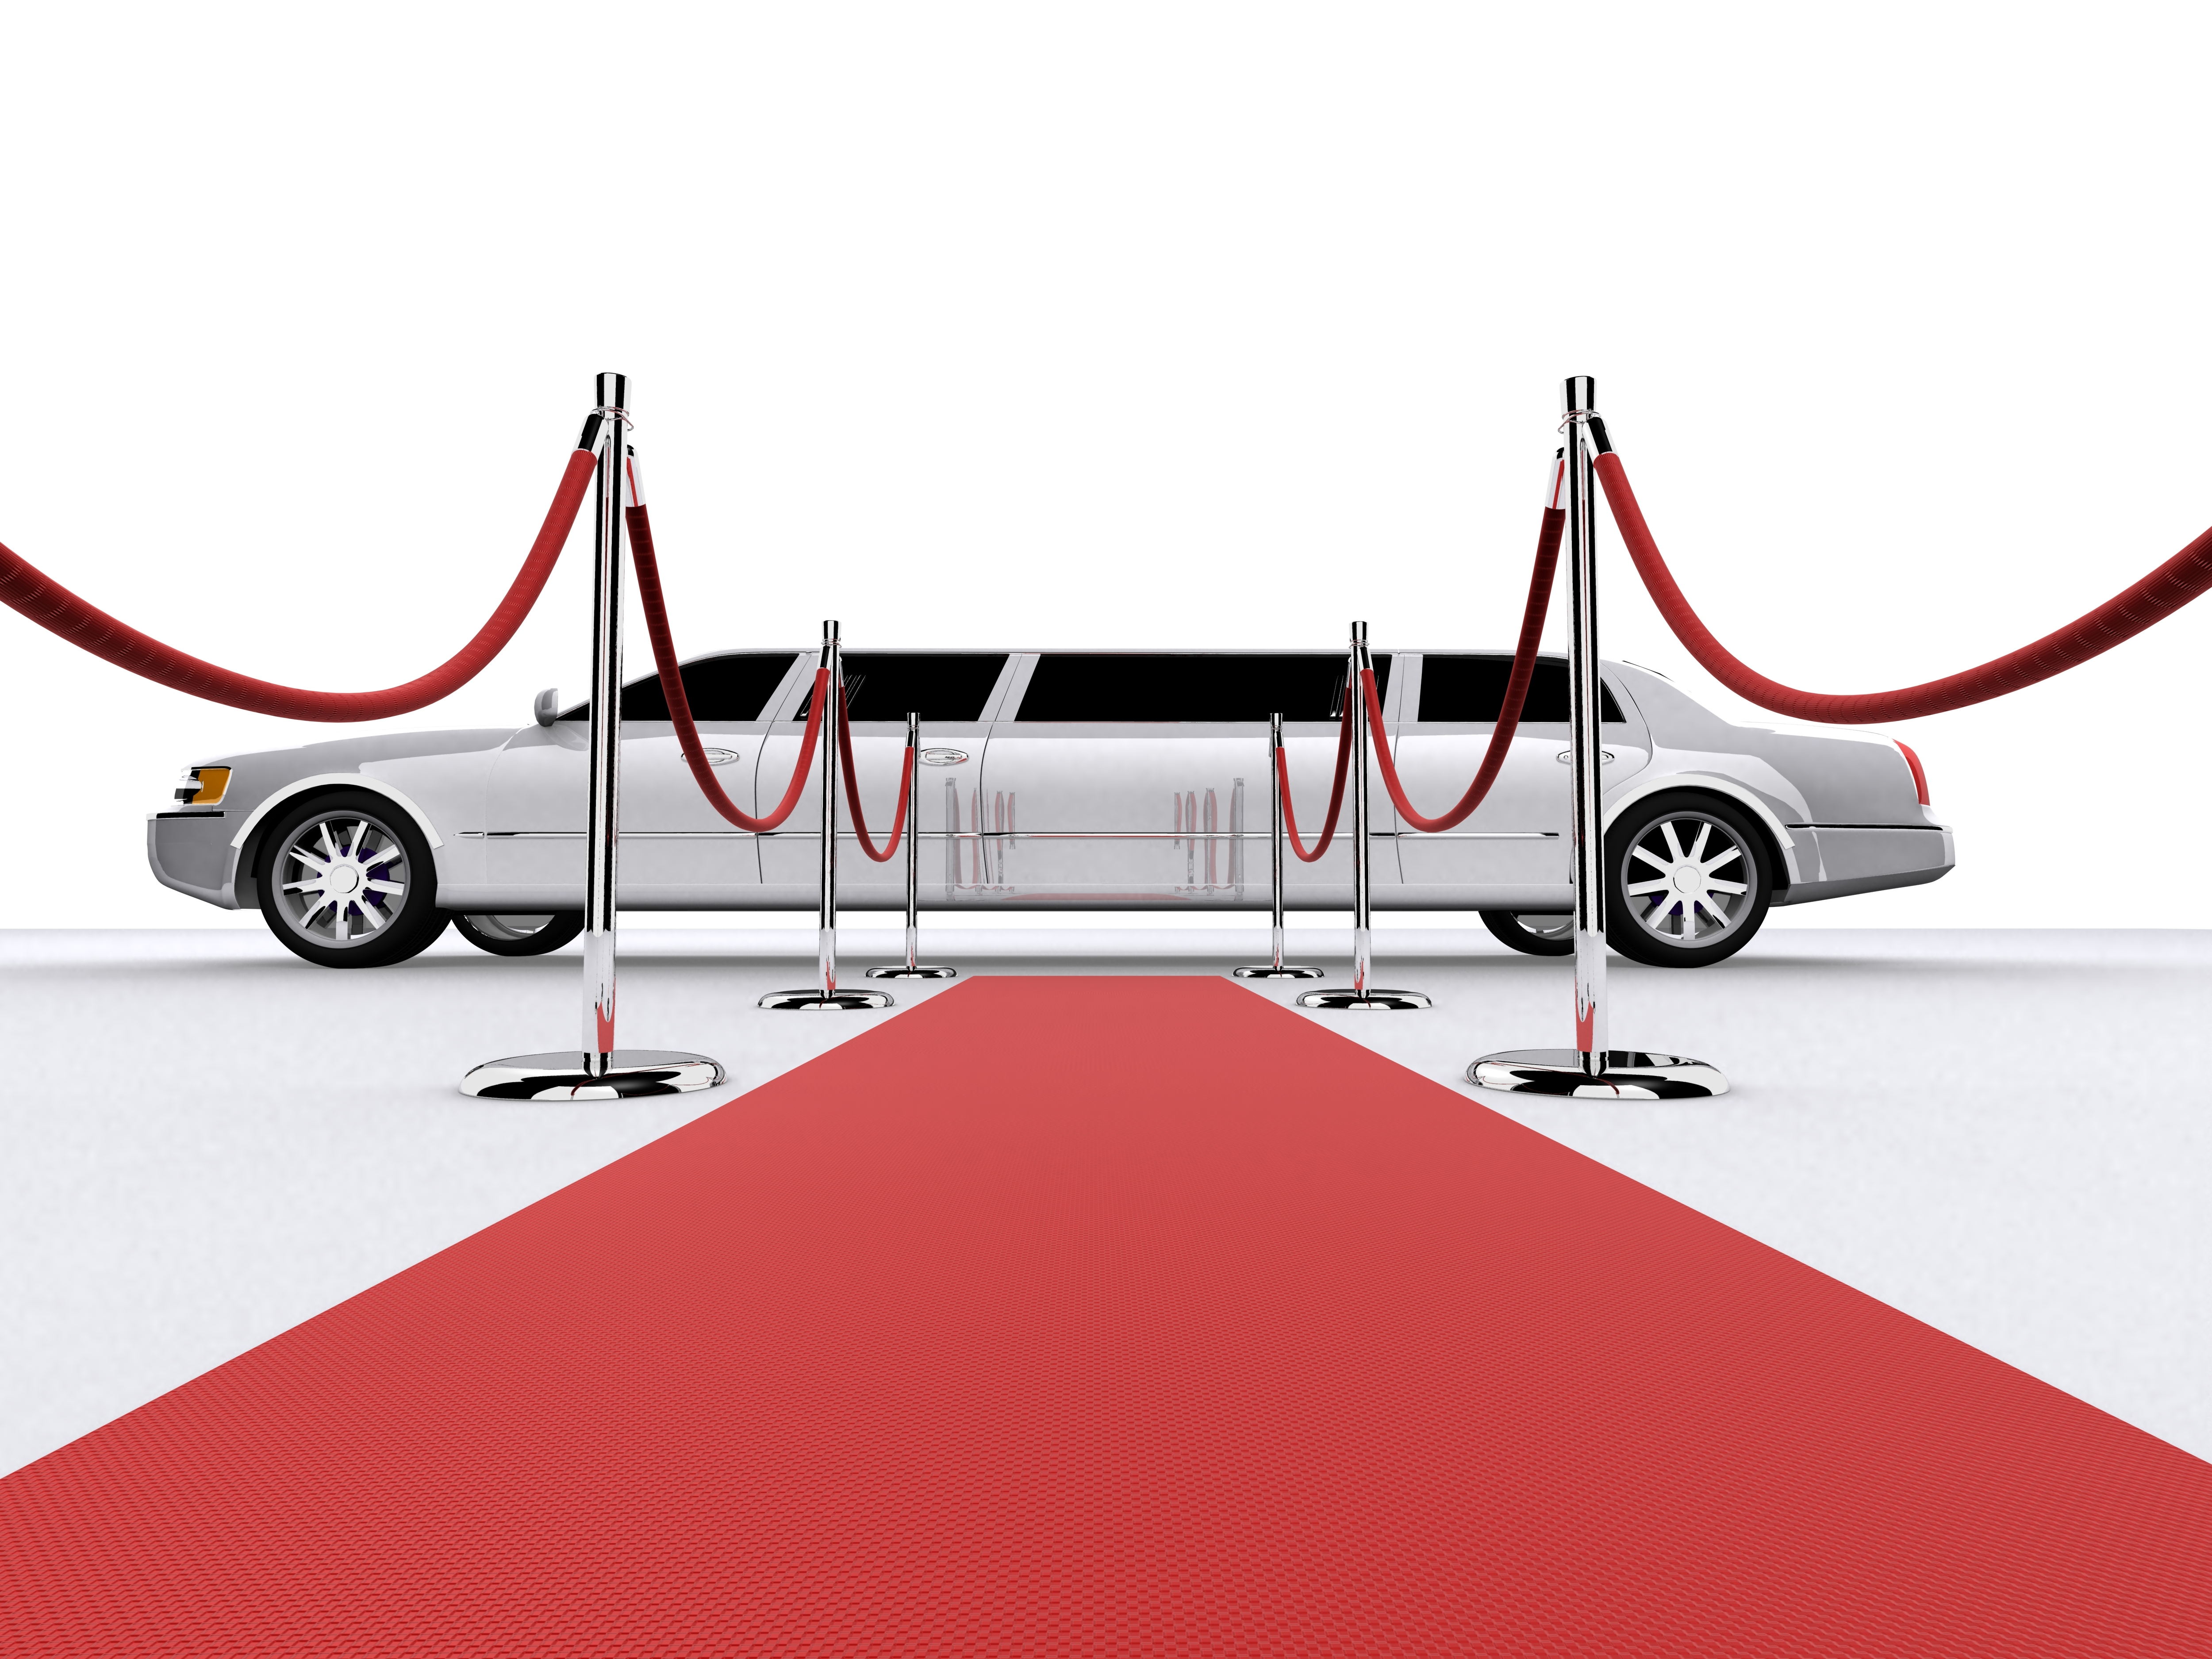 5000x3750 Four Easy Steps To Red Hot, Red Carpet Product Placement Us